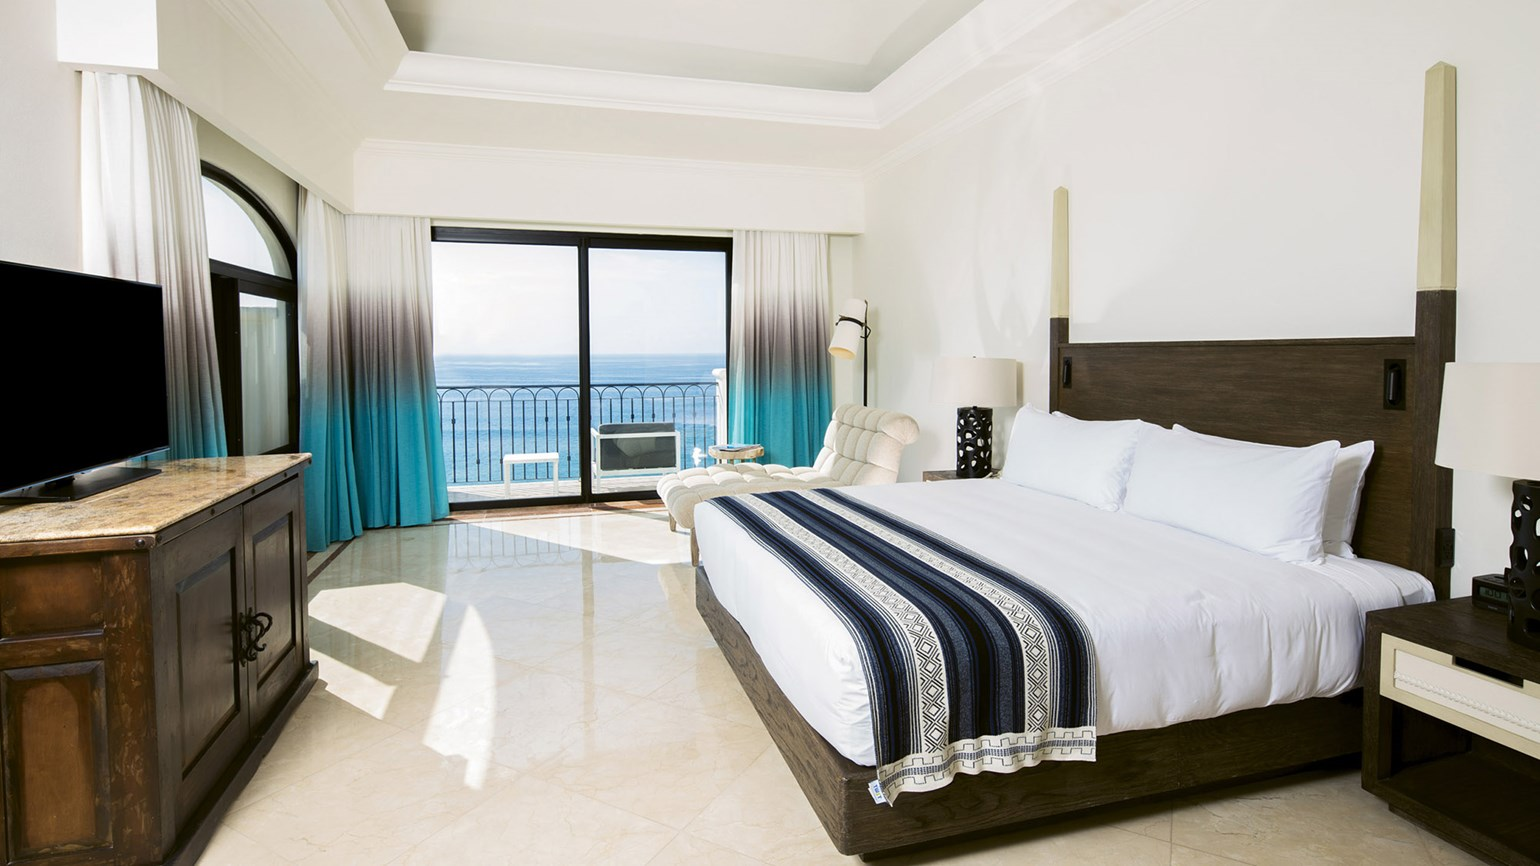 Local experiences intact at Hilton Los Cabos